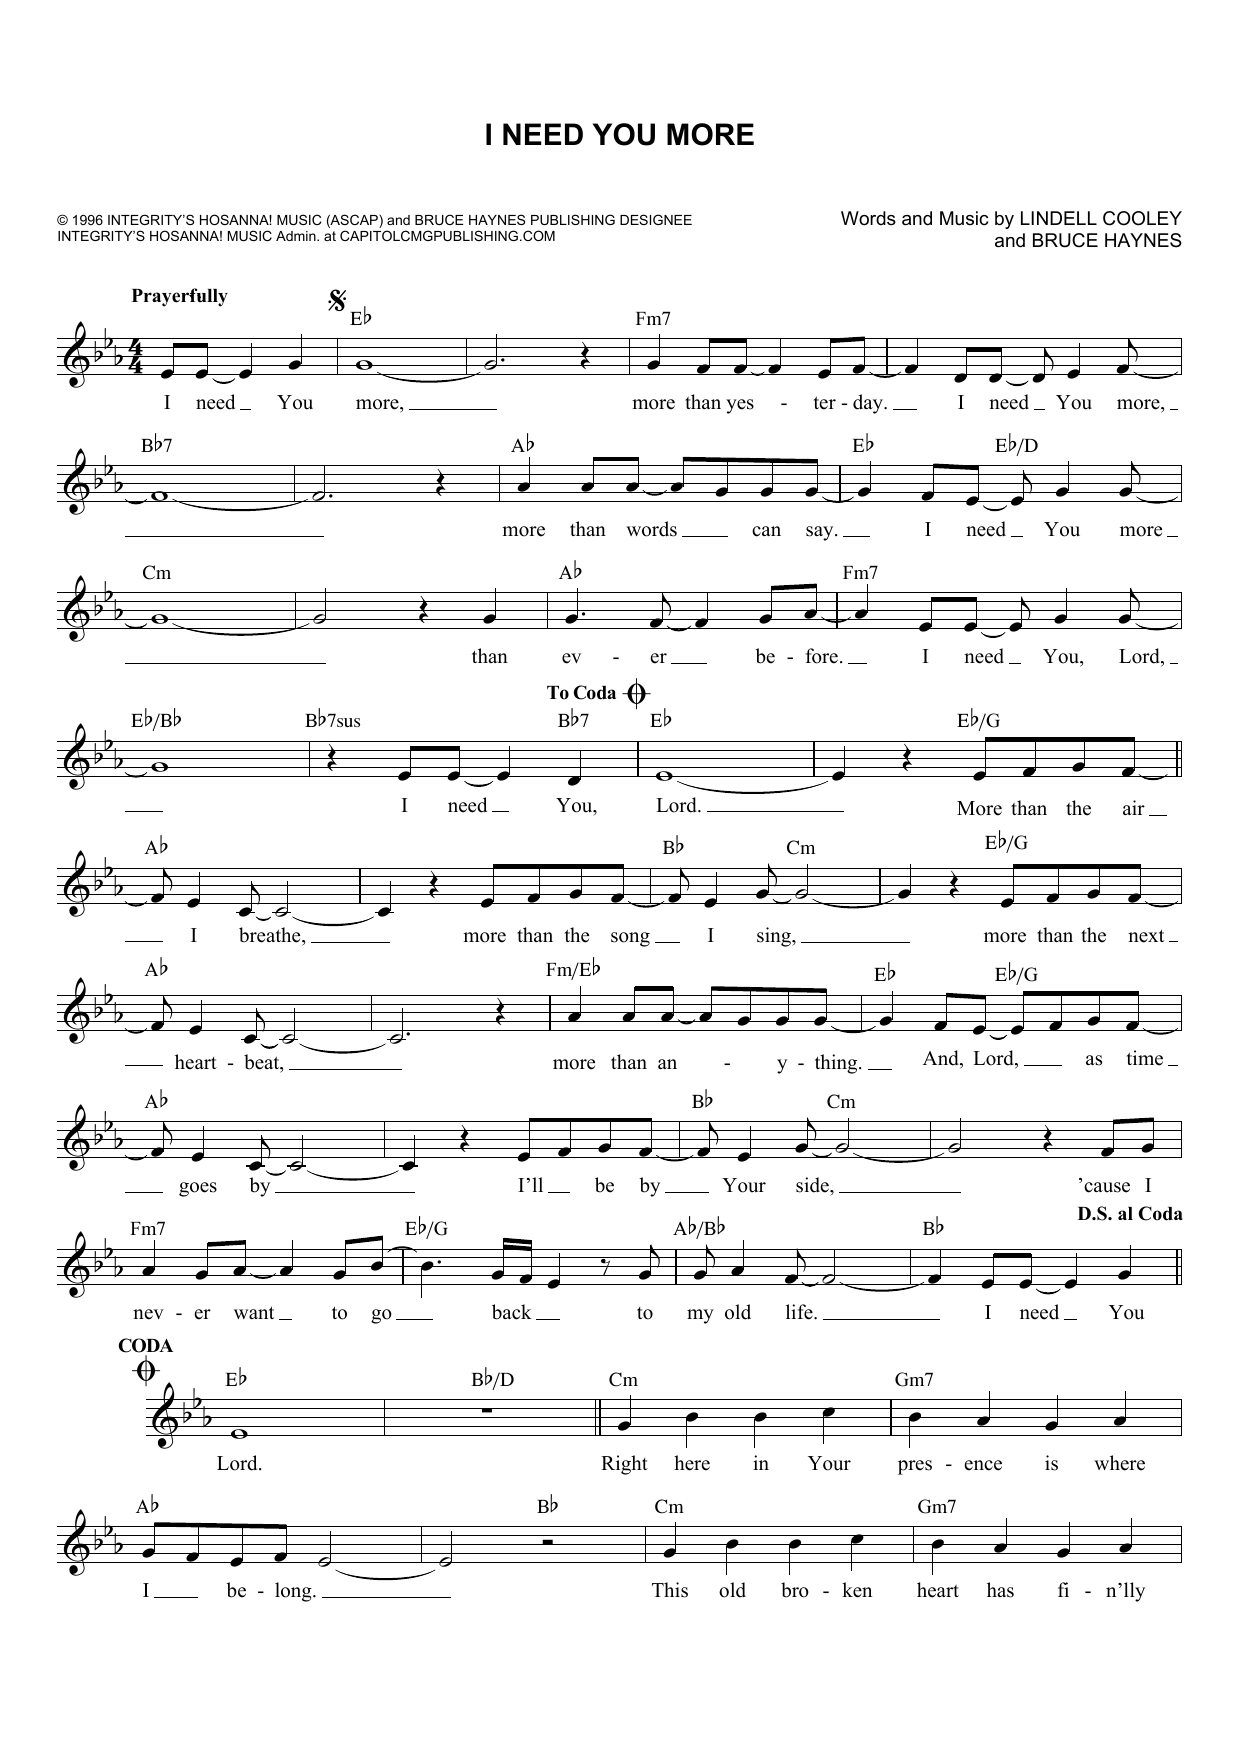 Bruce Haynes I Need You More sheet music notes and chords. Download Printable PDF.